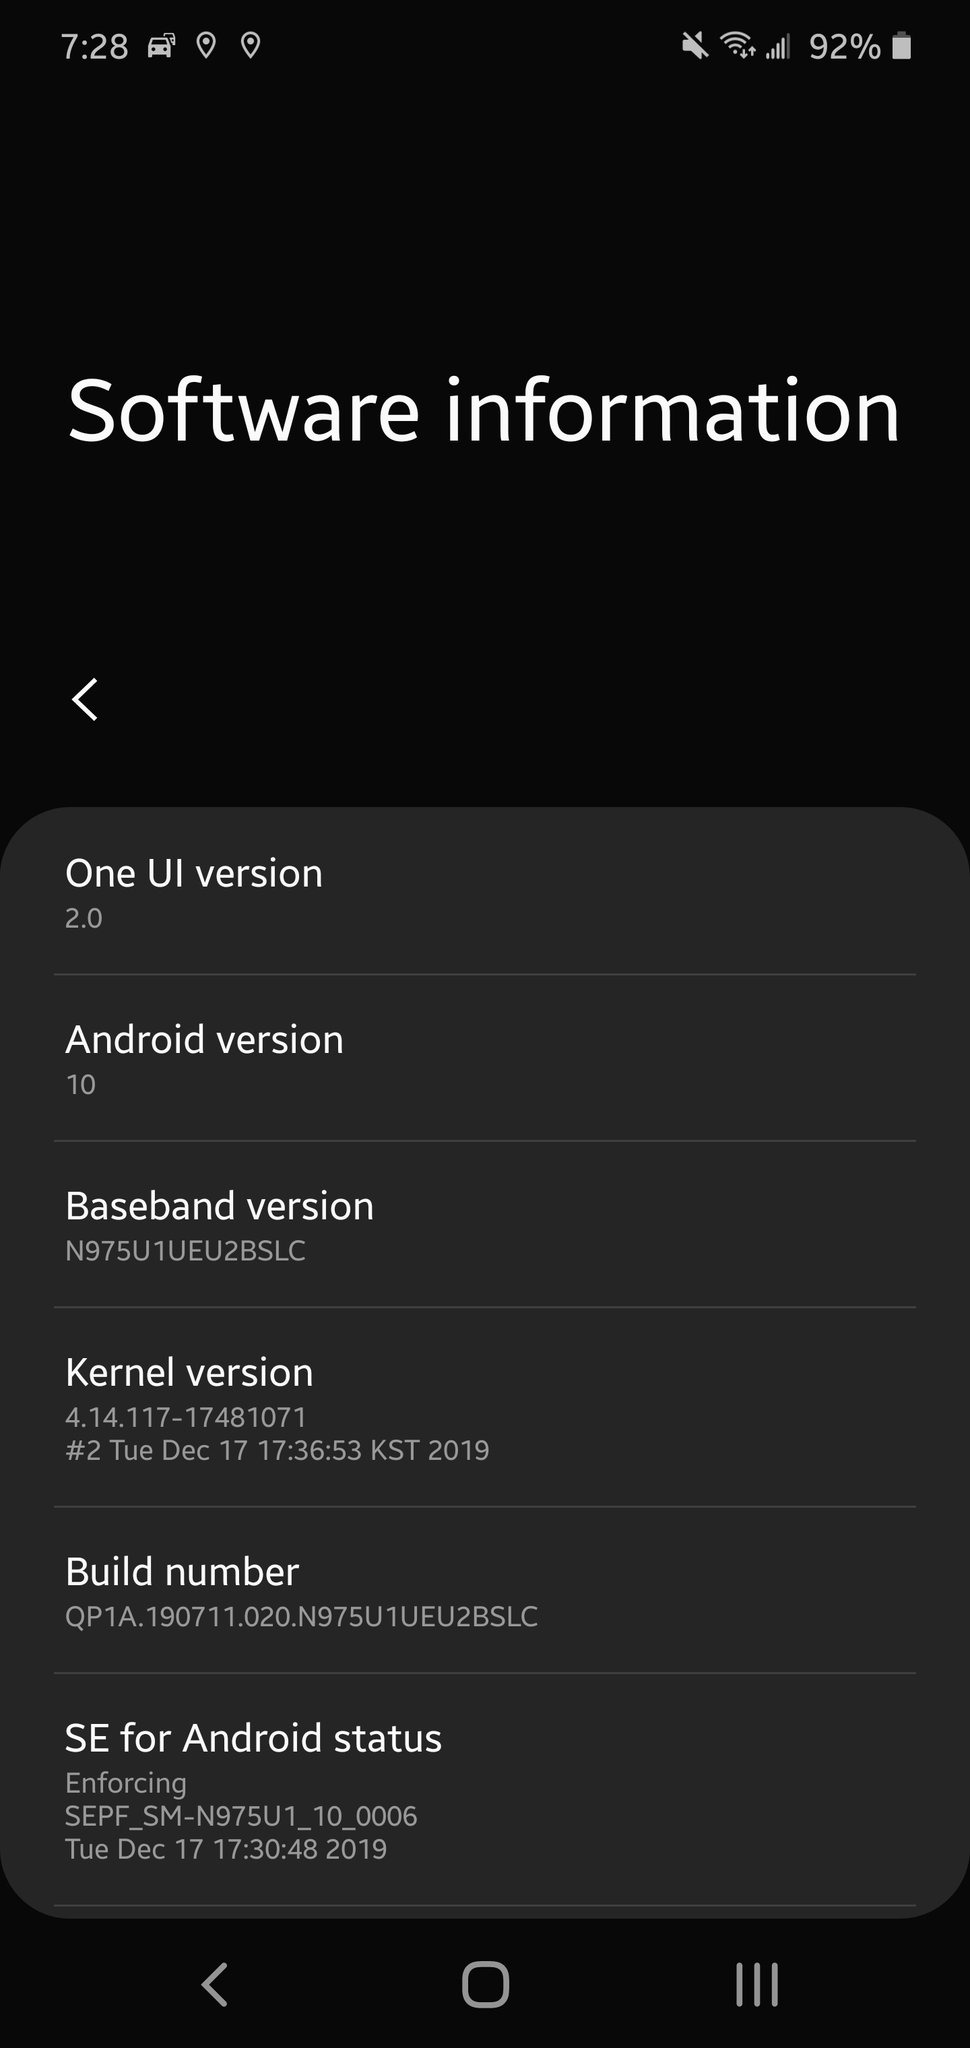 samsung galaxy note 10 android 10 unlocked update